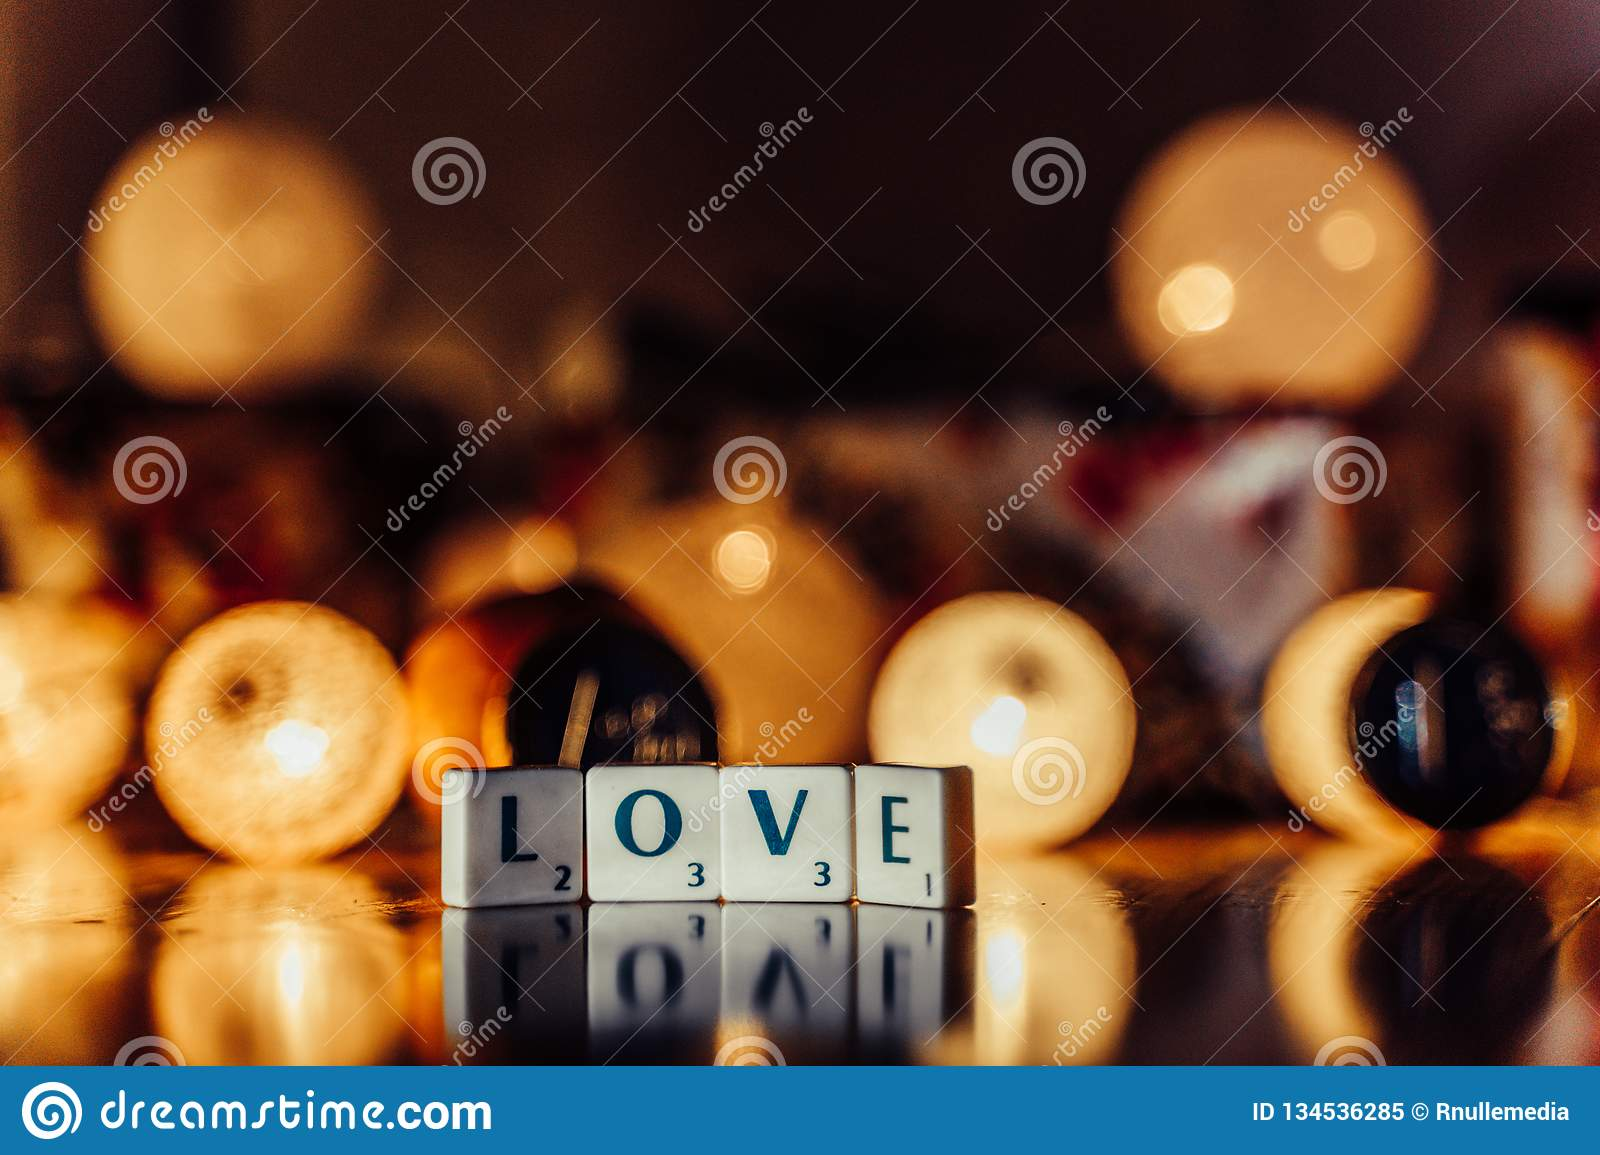 Word \'Love\' set on the Wooden Background from Letters of Board Game With the Blurred Christmas Lights, Fruits and Presents in th. E Background together with royalty free stock photo